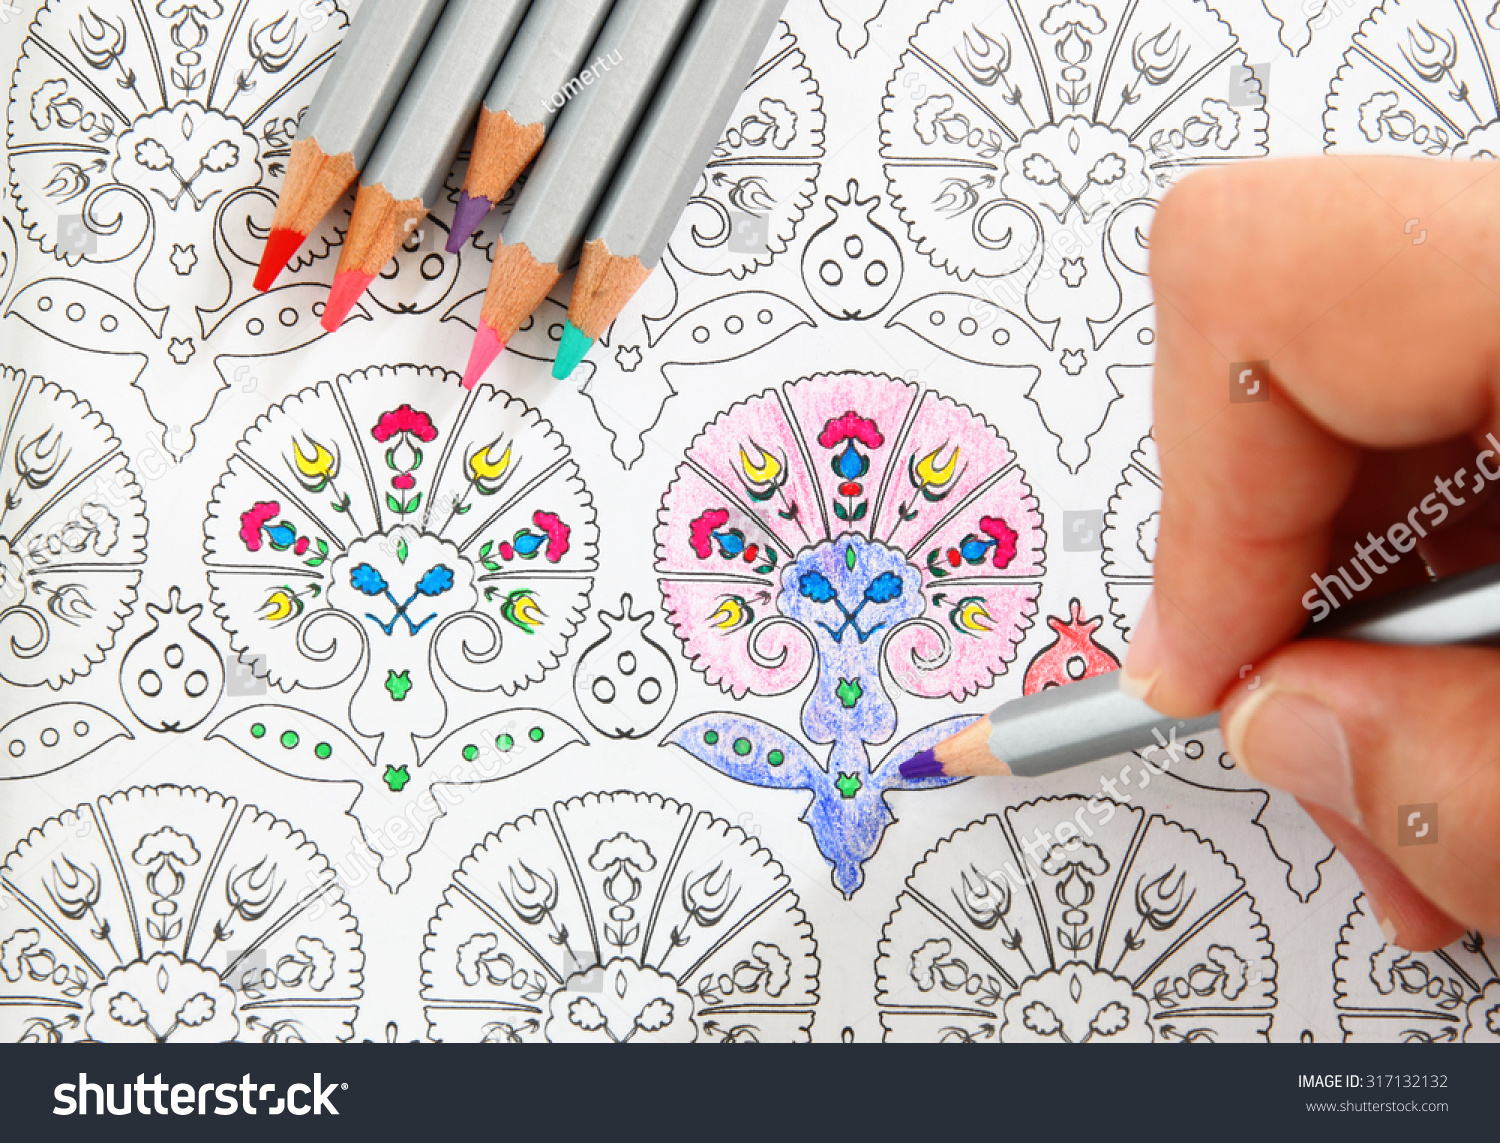 Image Of Woman Coloring Adult Book Trend For Stress Relief Top View